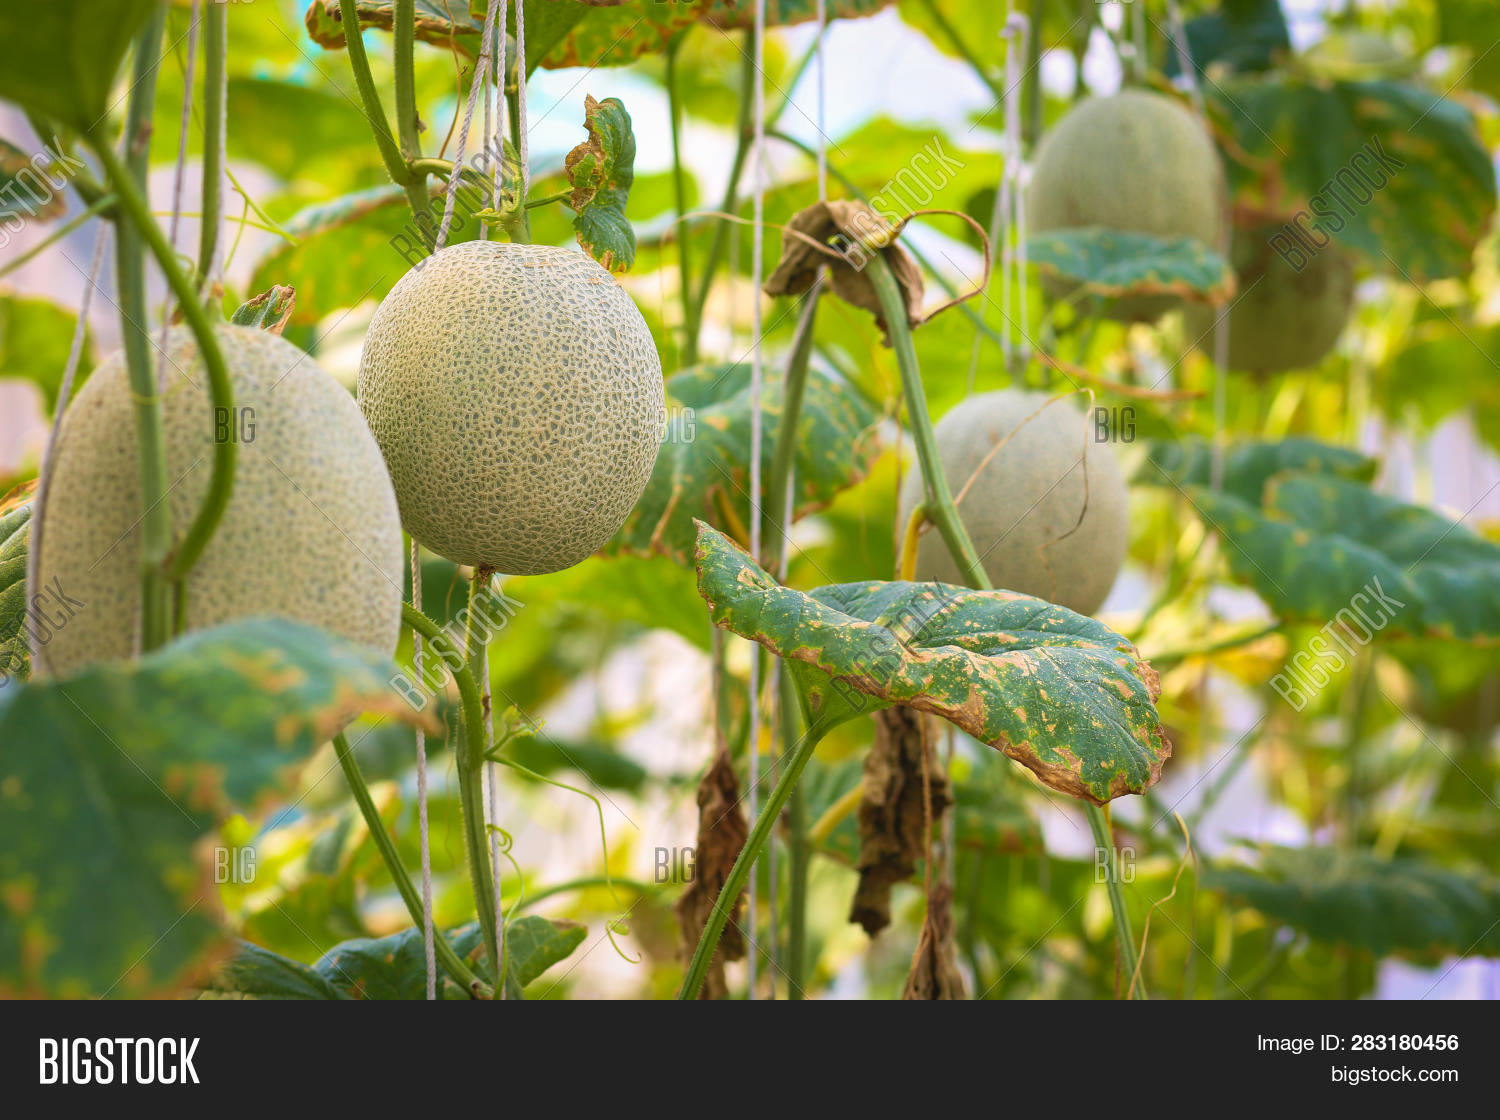 Cantaloupe Melons Leaf Image Photo Free Trial Bigstock View top rated cantaloupe leaves recipes with ratings and reviews. bigstock